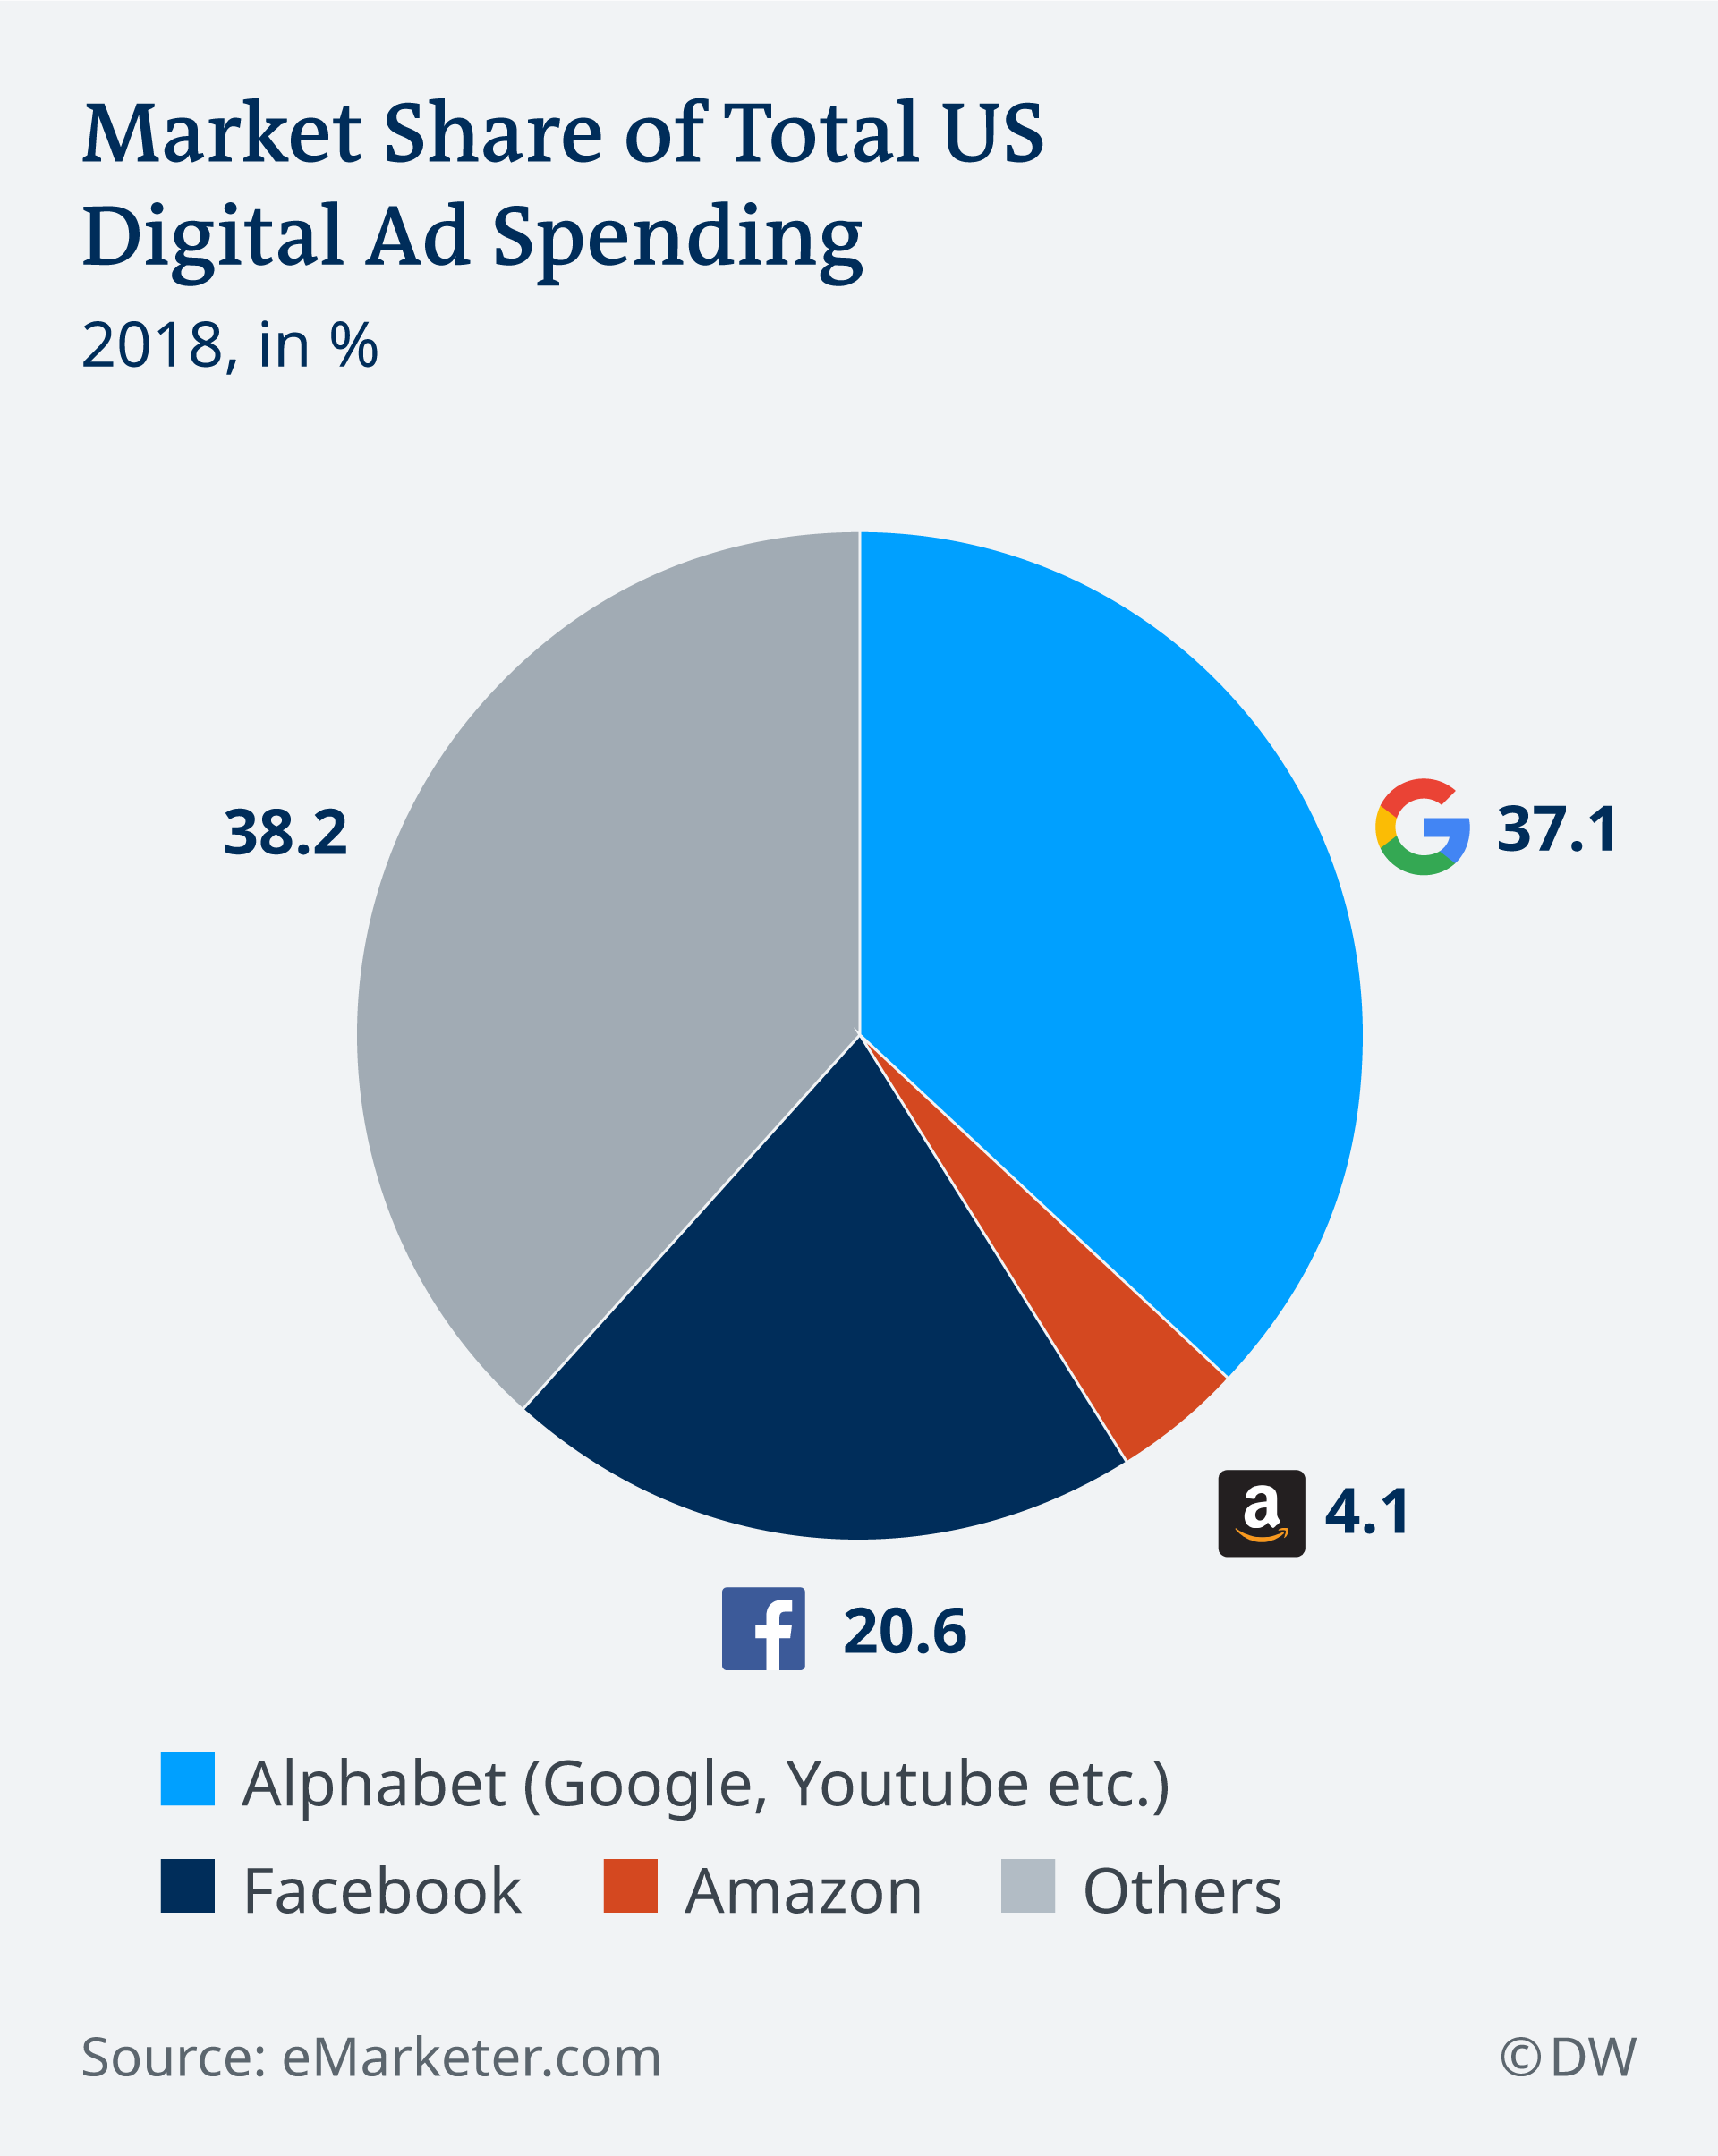 Alphabet's share of online advertising in the USA